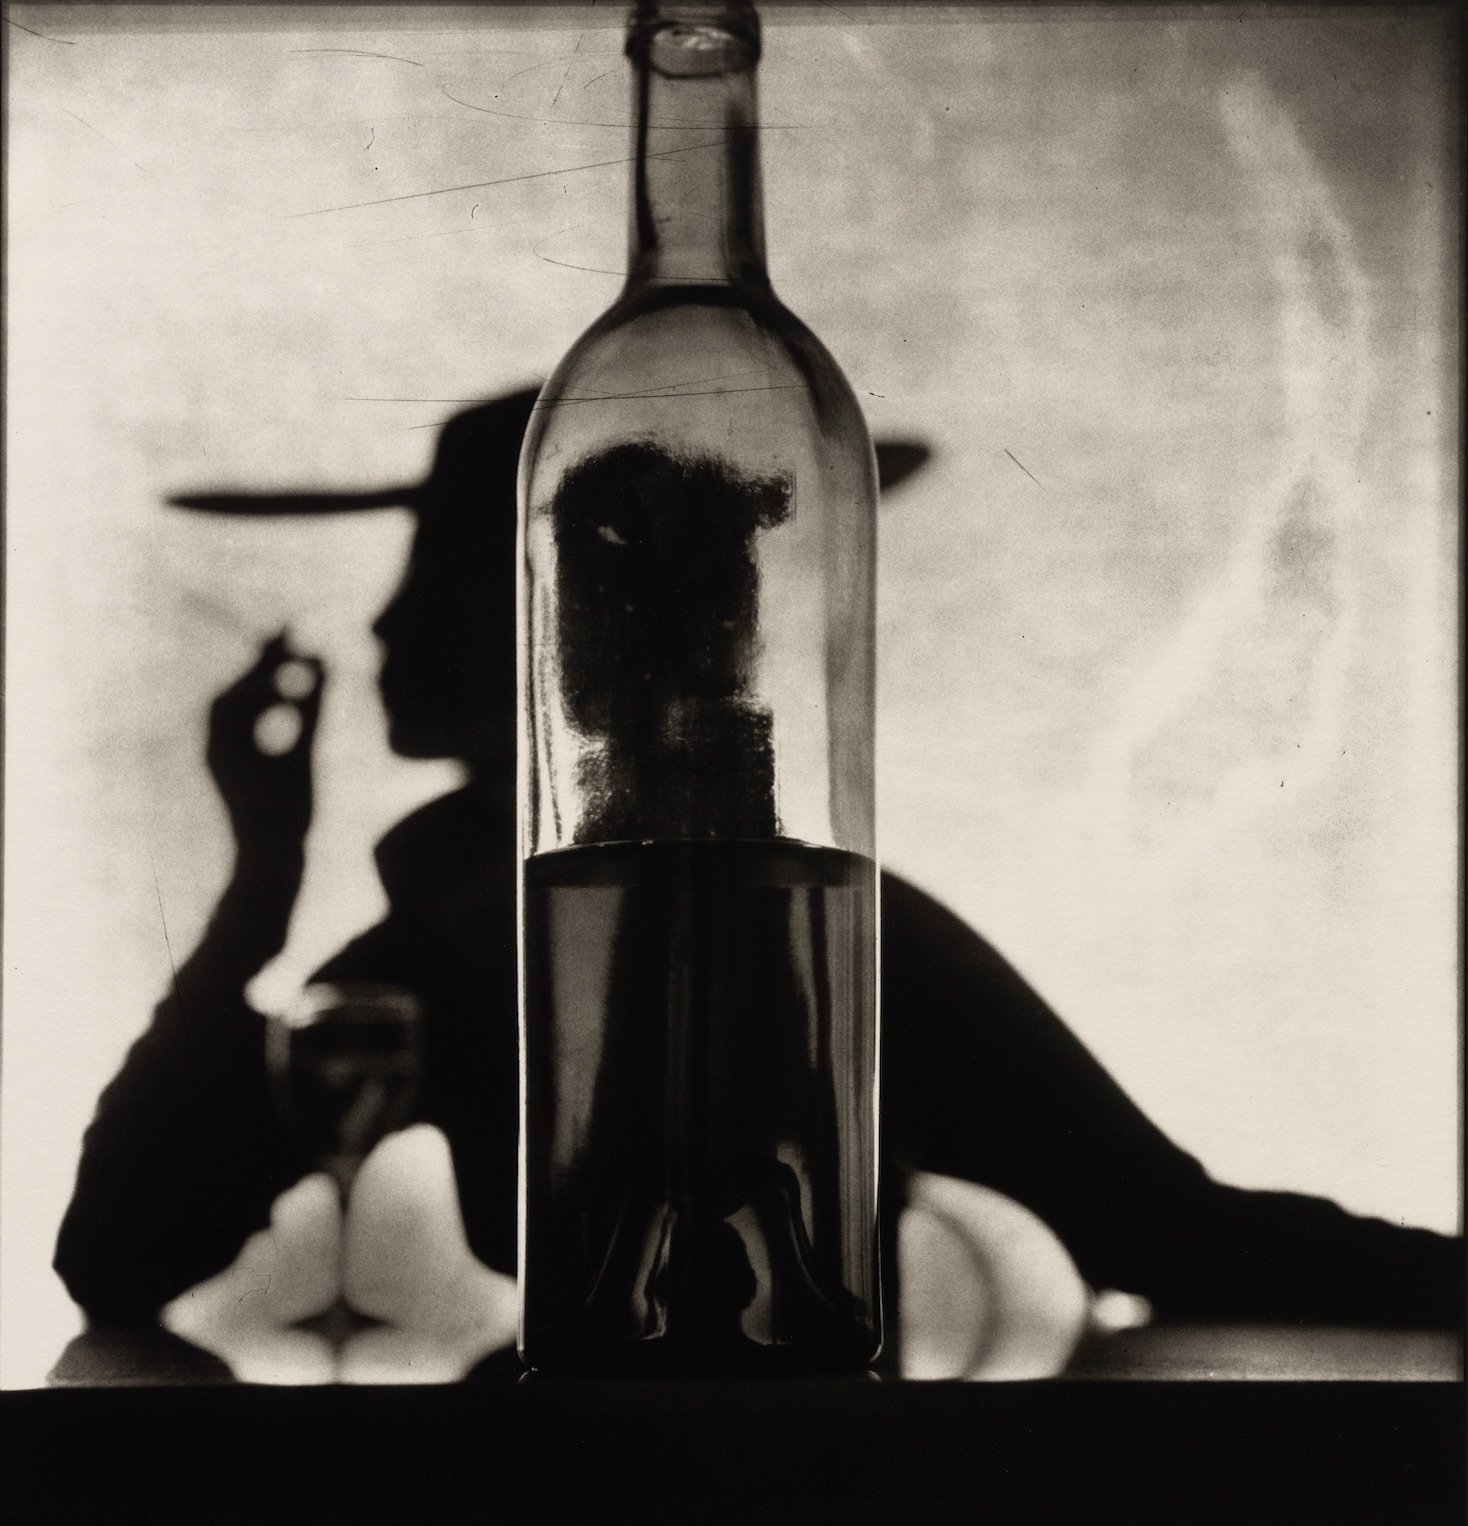 Irving Penn, Girl Behind Bottle (Jean Patchett), 1949 © The Irving Penn Foundation, courtesy of Pace Gallery.